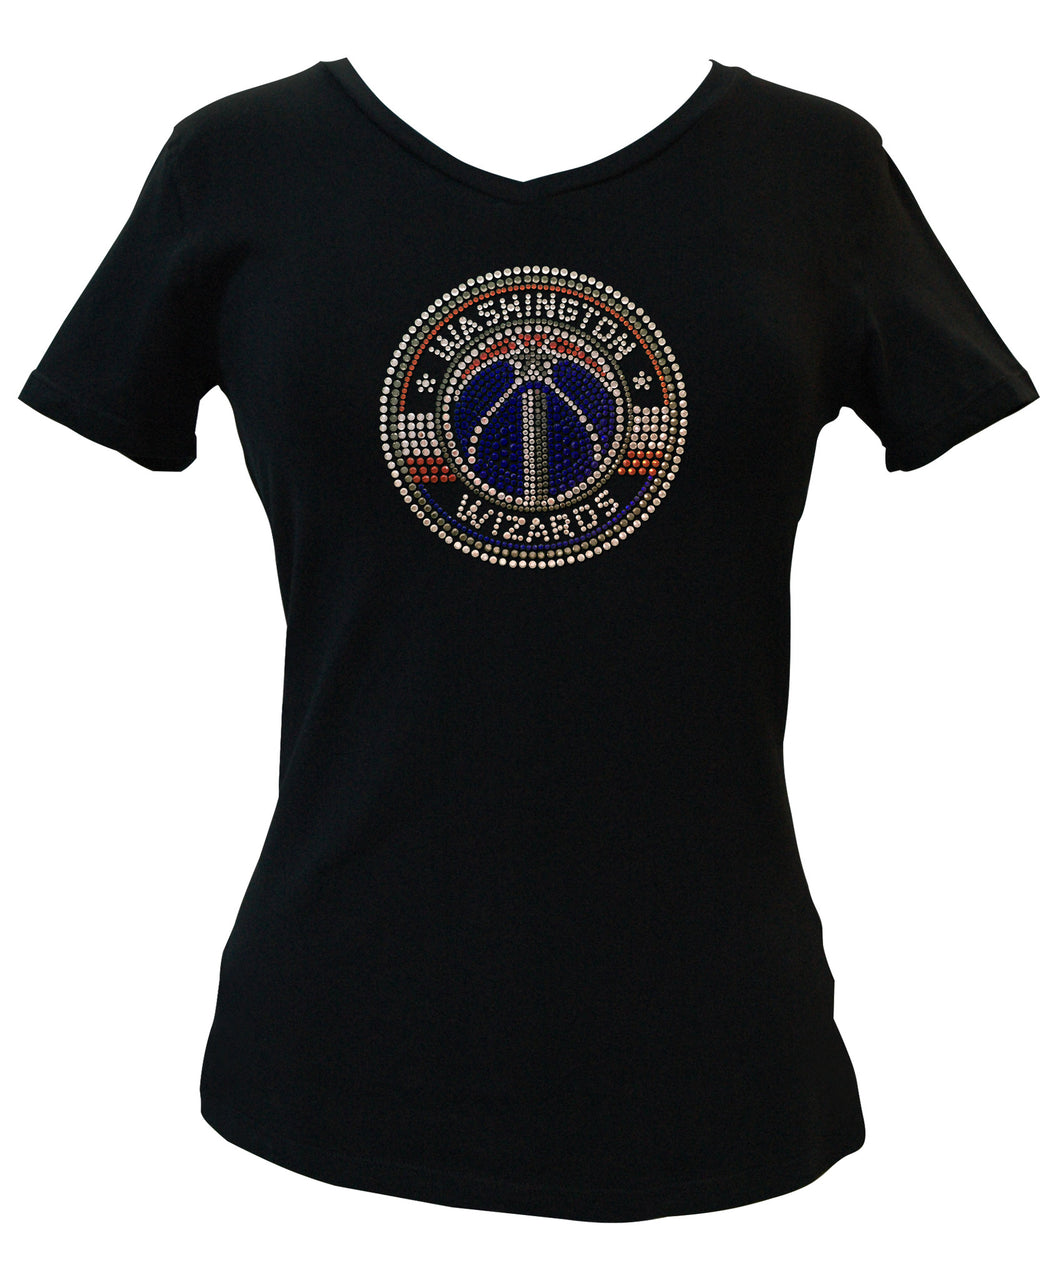 Official Washington Wizards Rhinestone V-Neck Tee